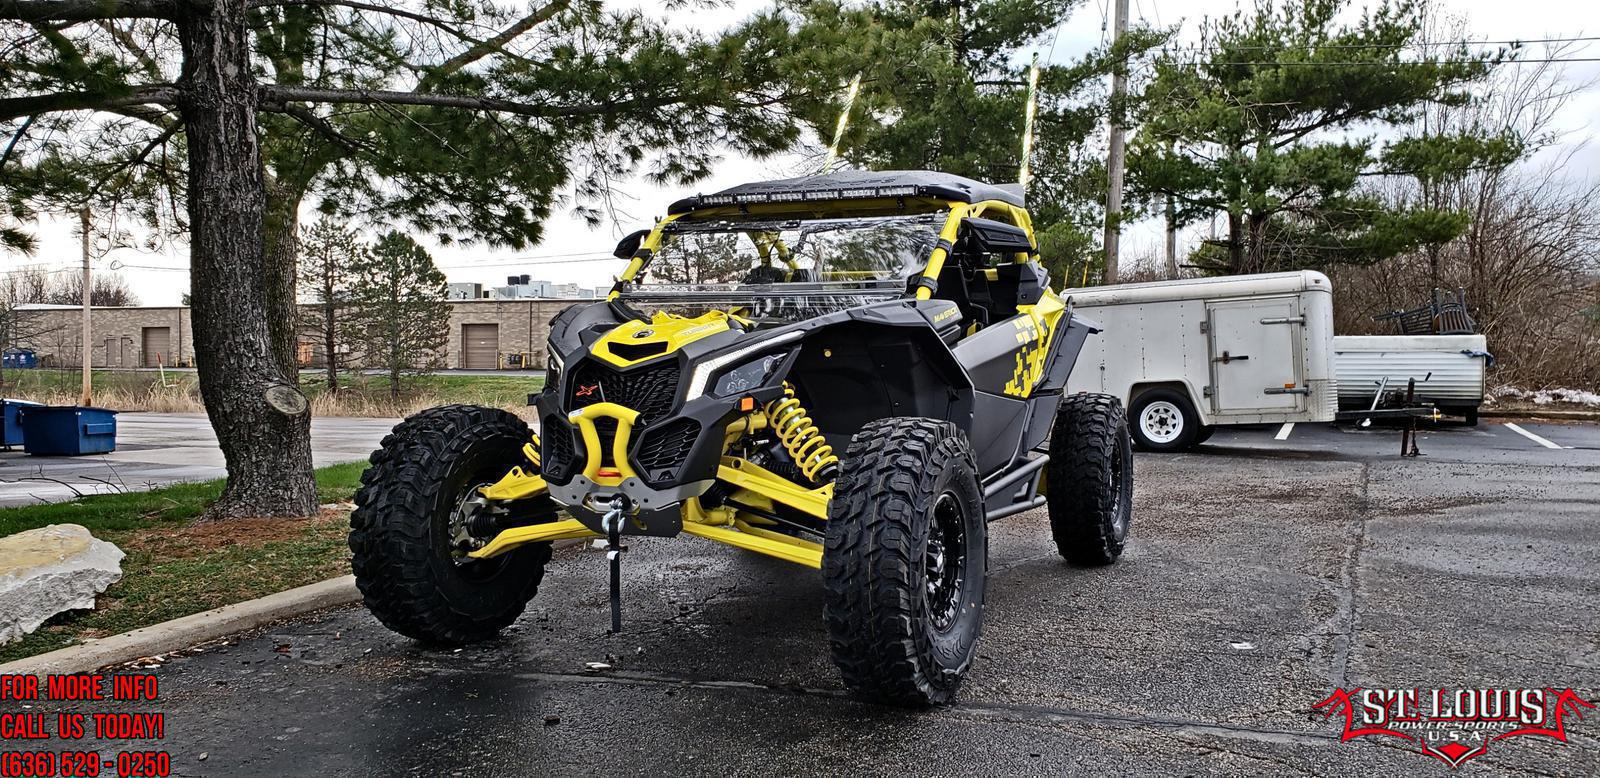 2019 Can-Am Maverick™ X3 X™ mr Turbo R for sale in Fenton, MO  St